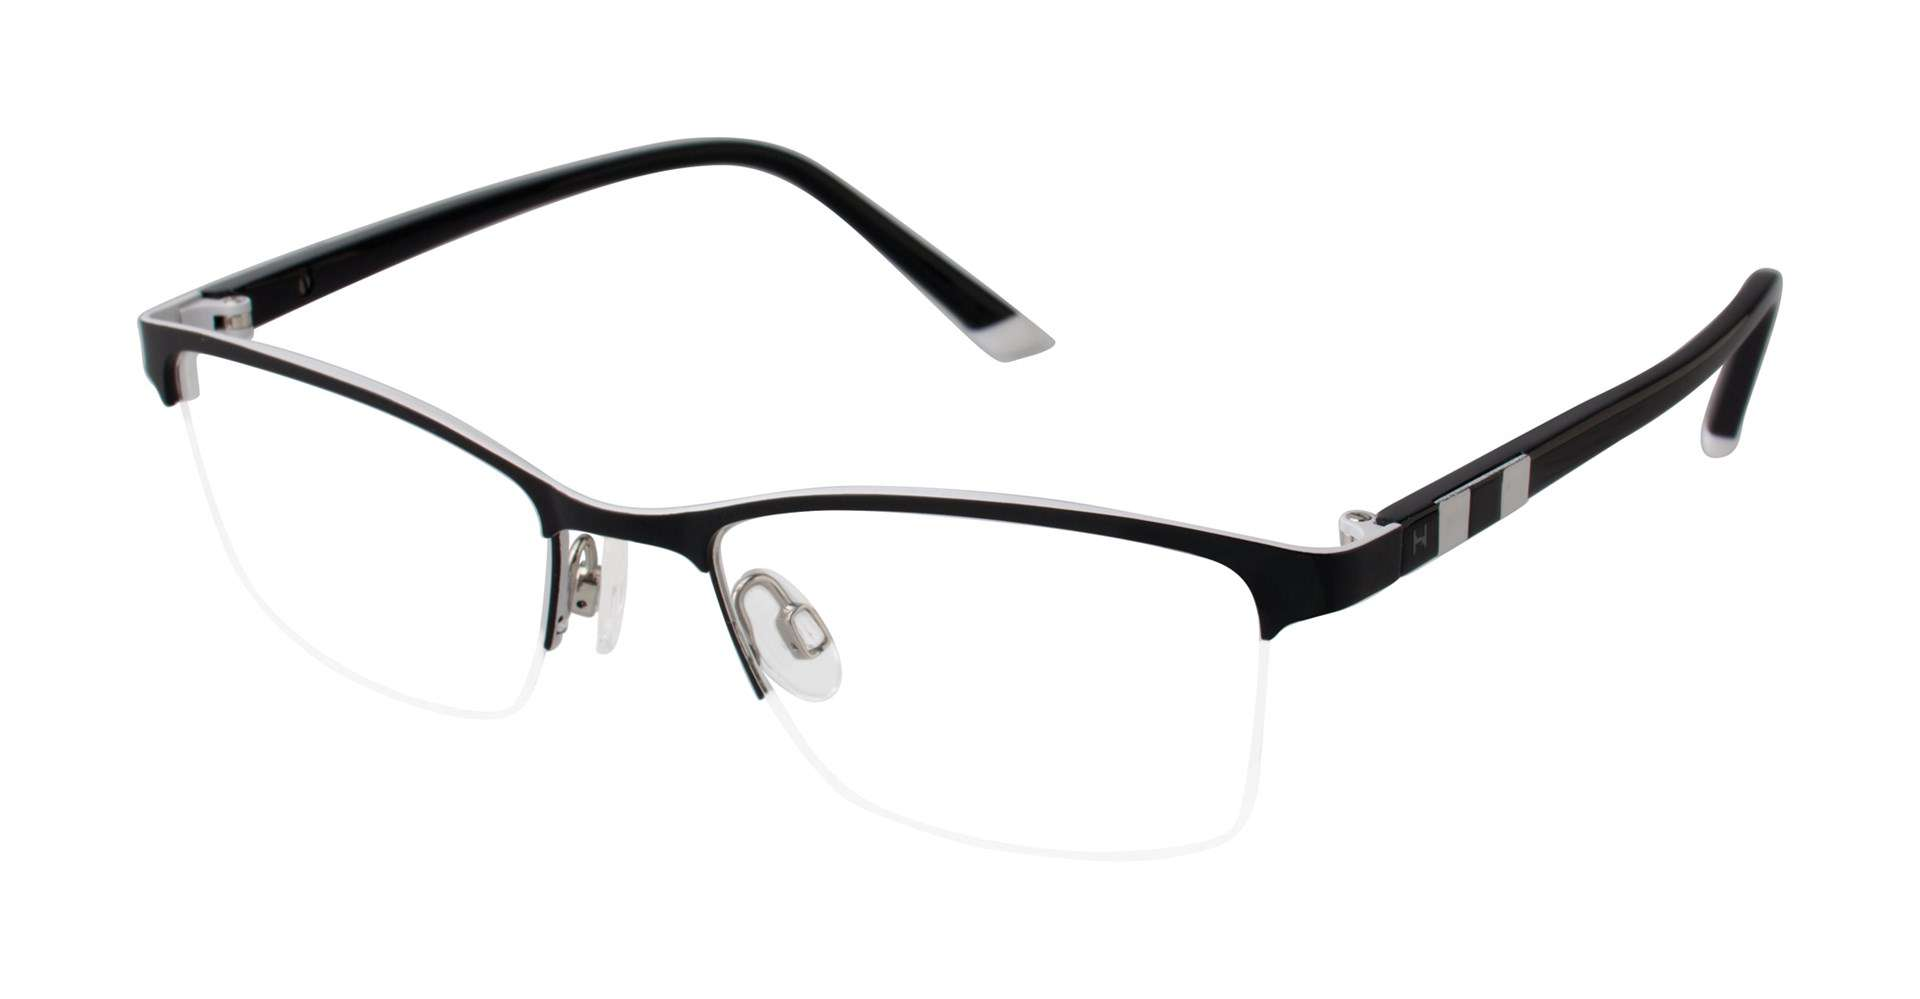 83aac93603 Humphreys 592029 Prescription Eyeglasses